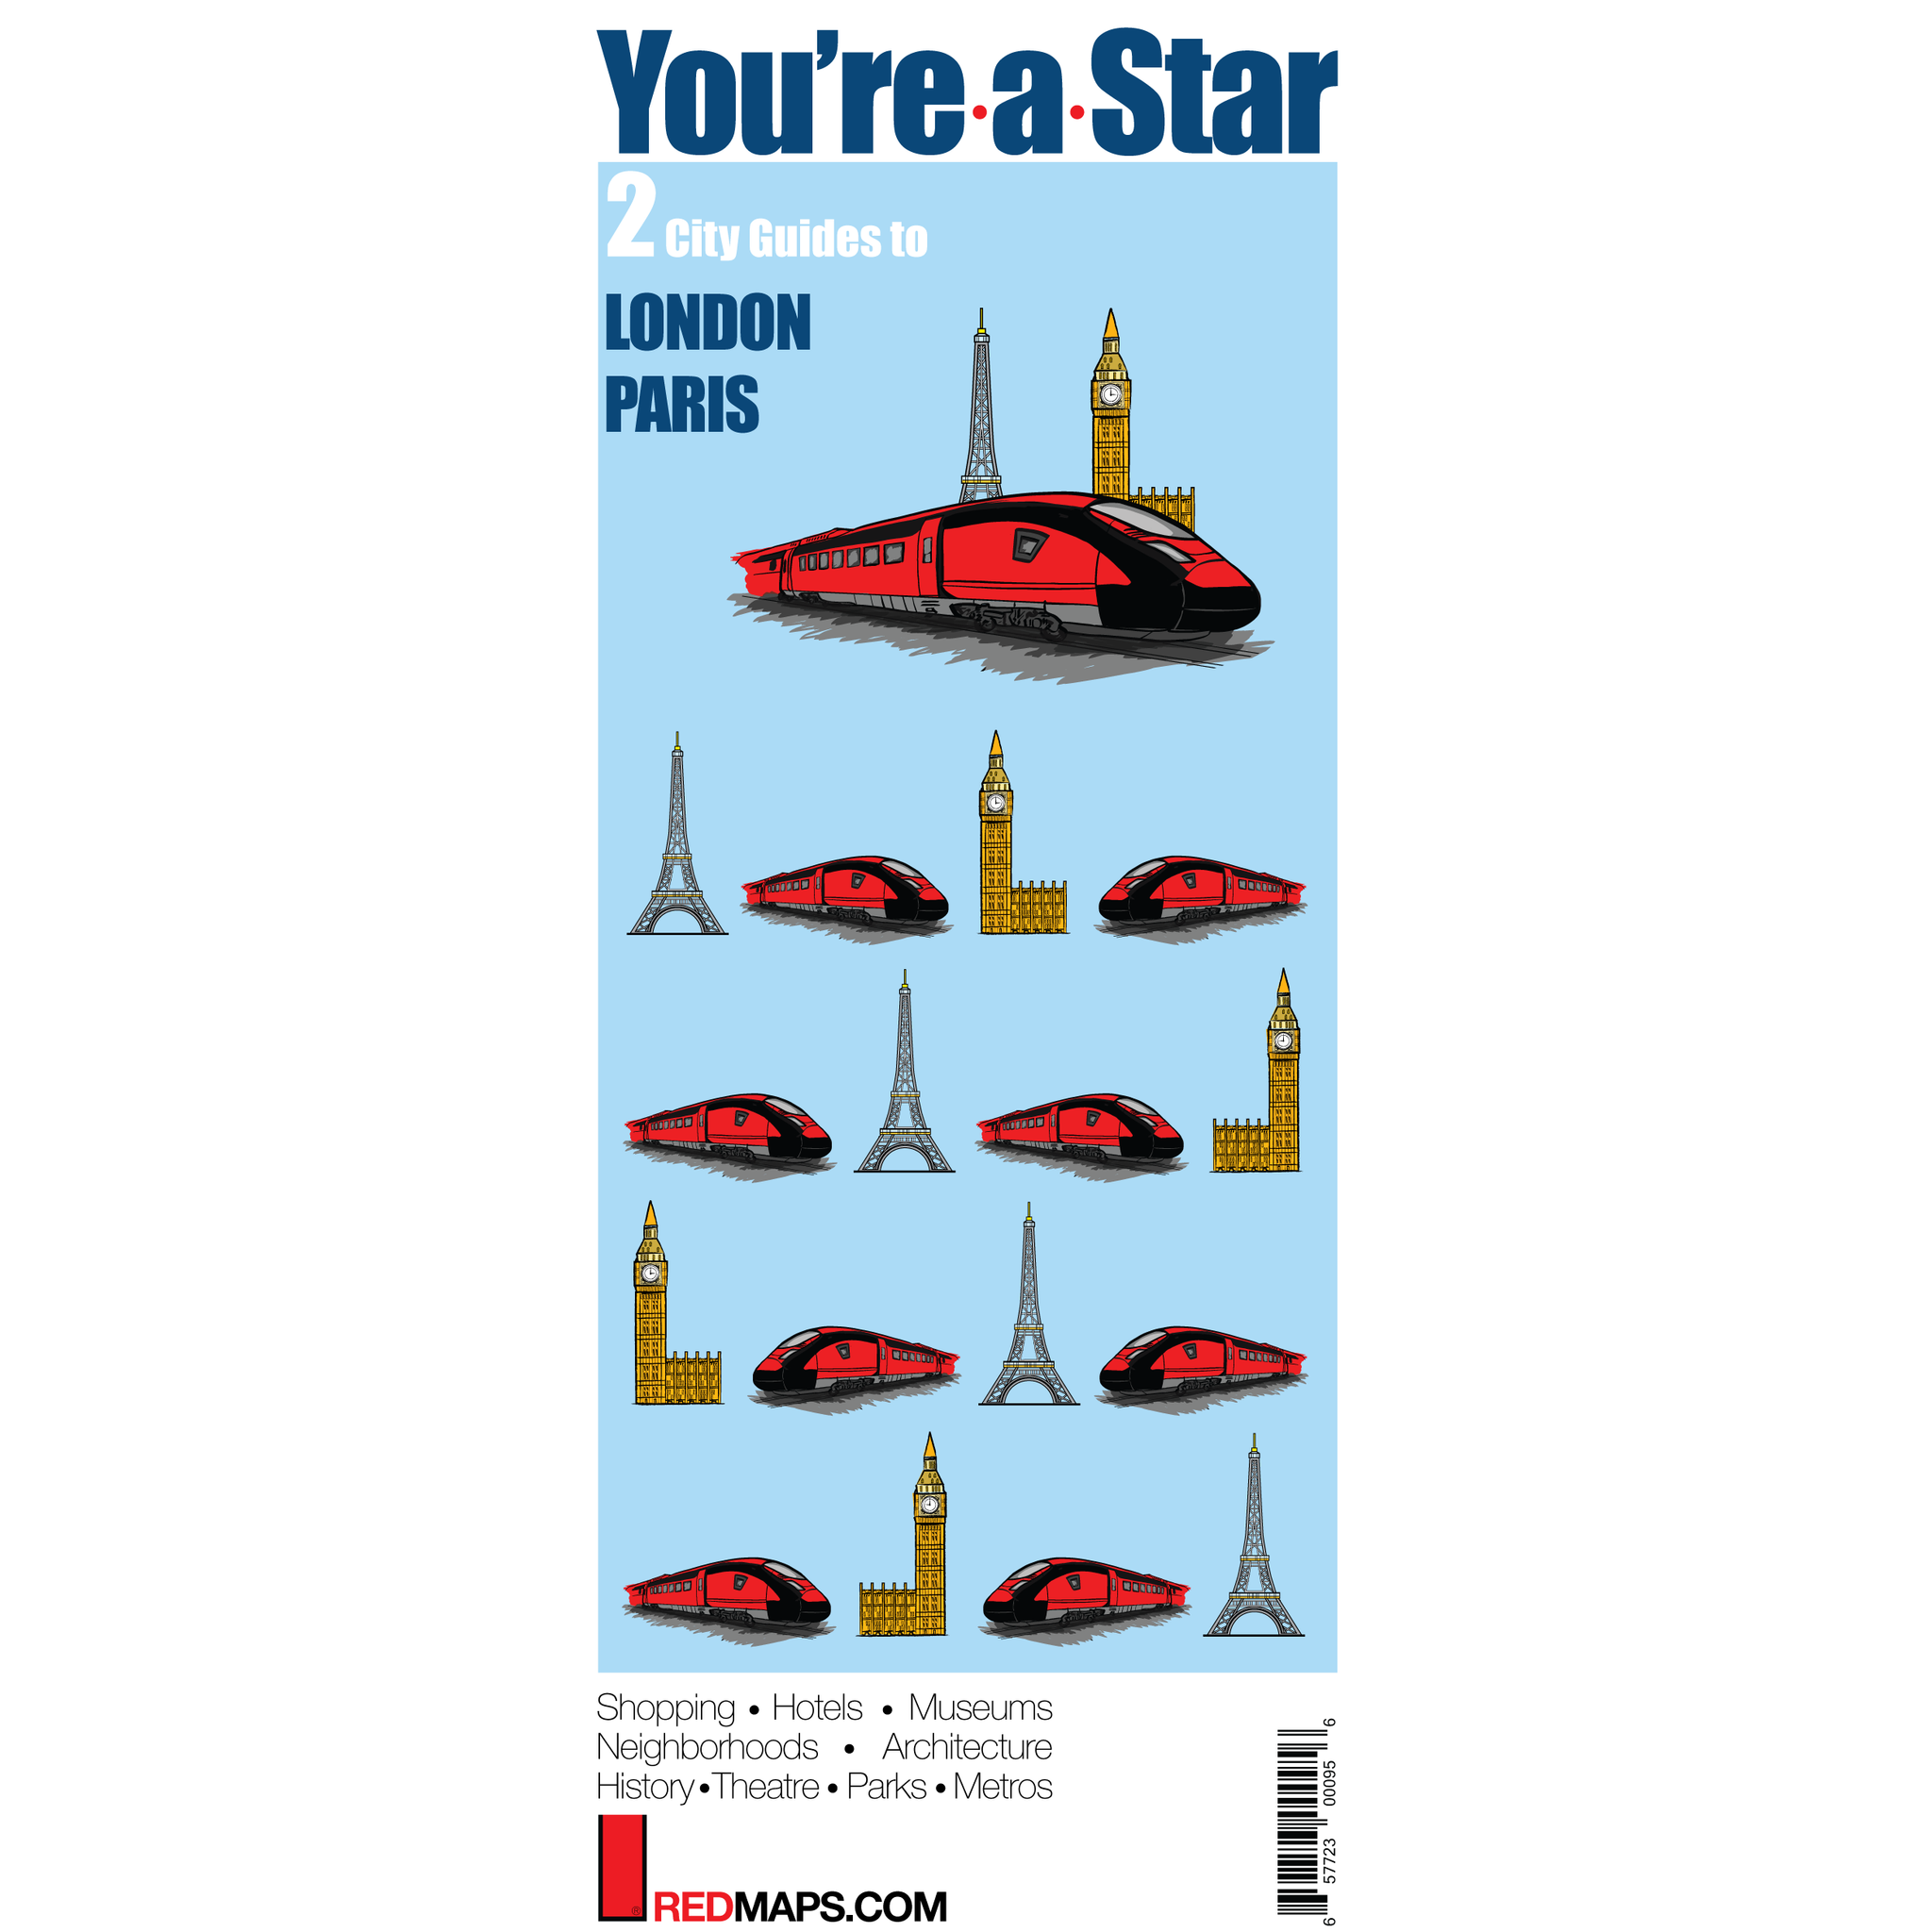 Multi-City map set called You're-A-Star that has two cultural guides to London and Paris